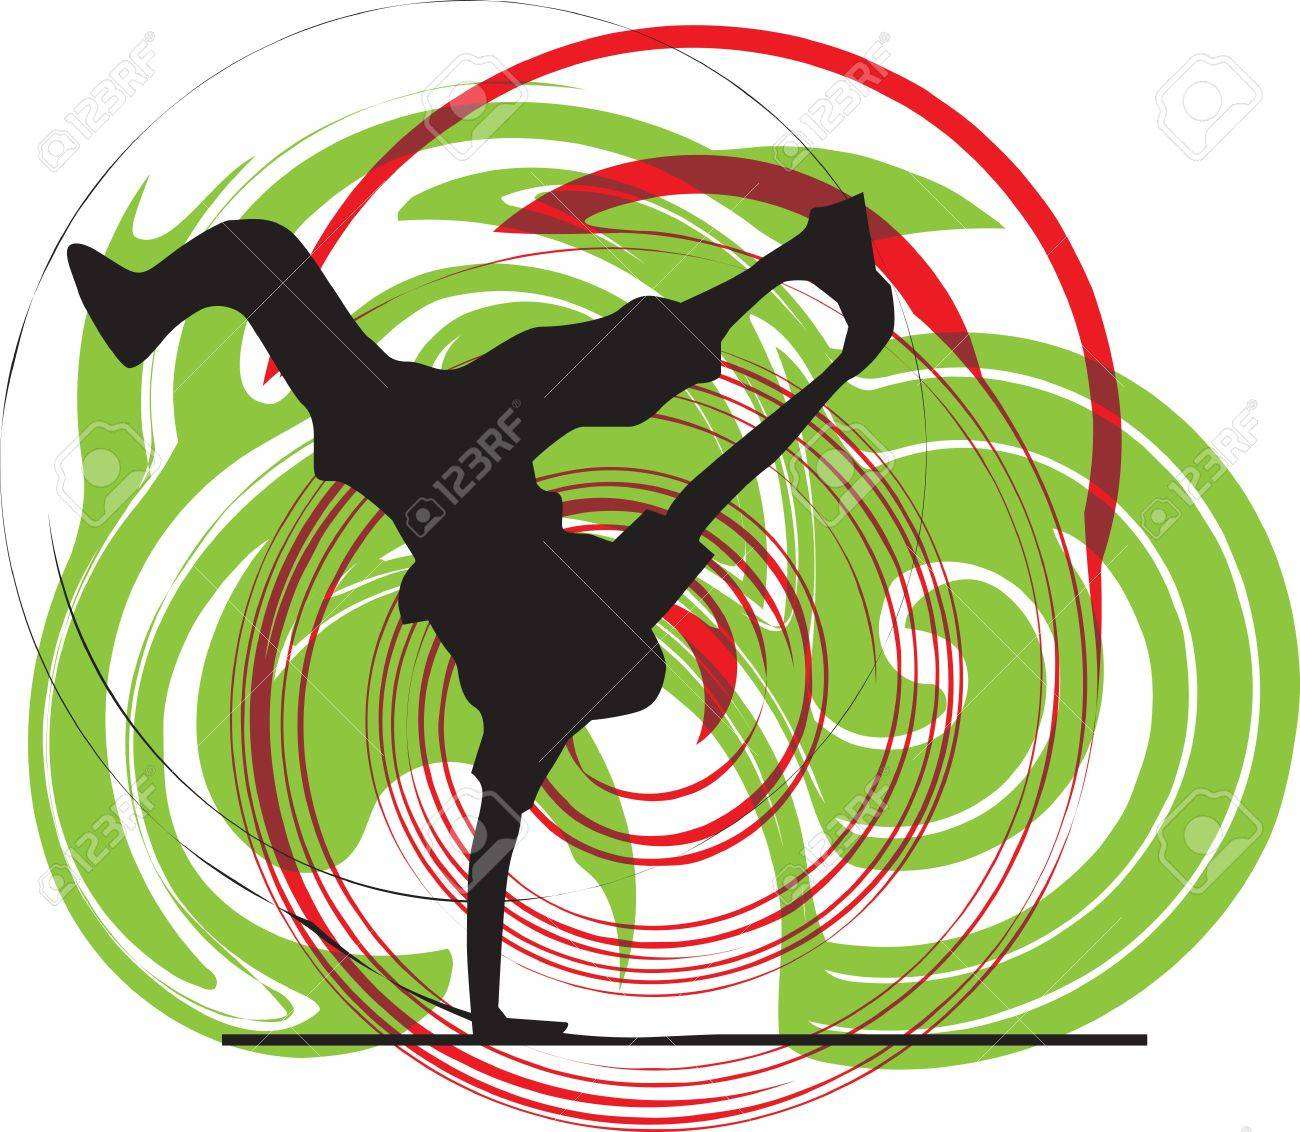 breakdancer illustration Stock Vector - 10937056